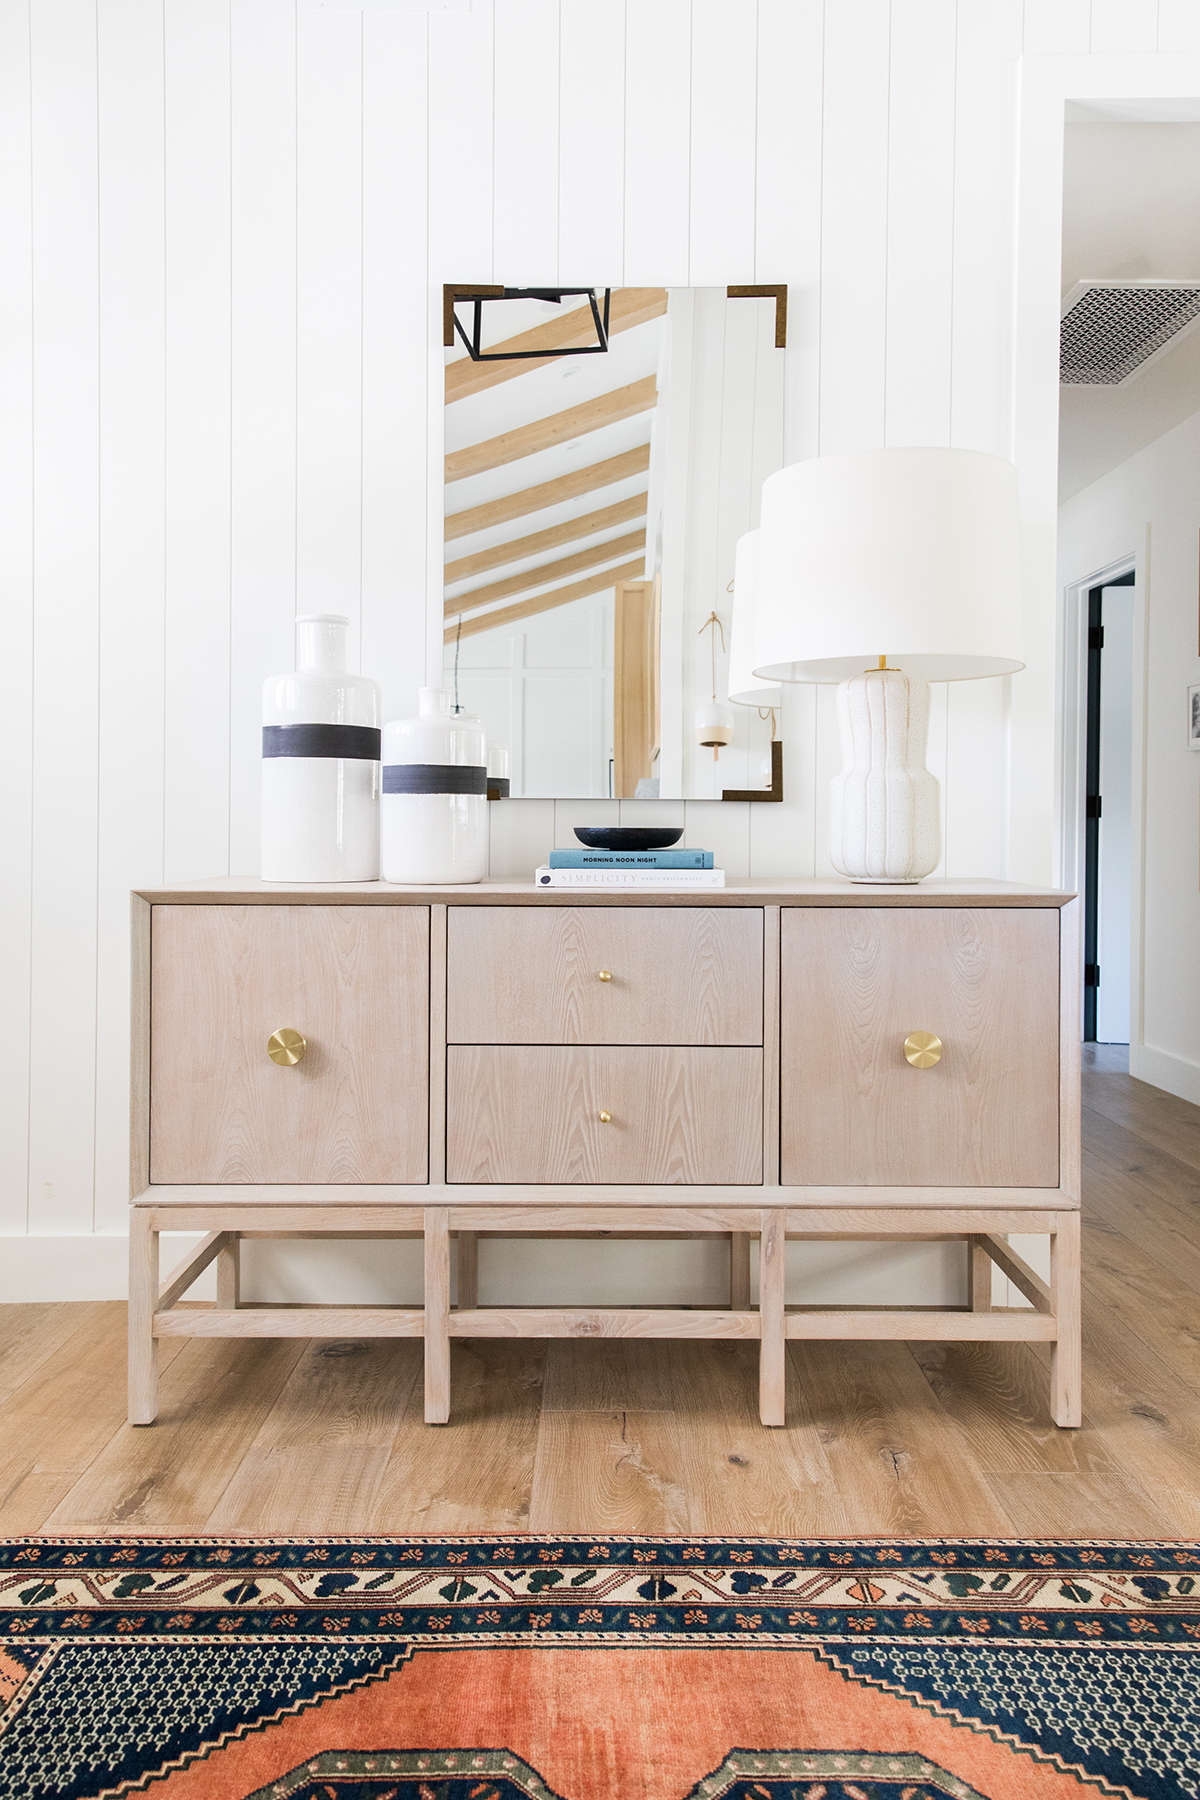 Console Styling | Vertical Paneling